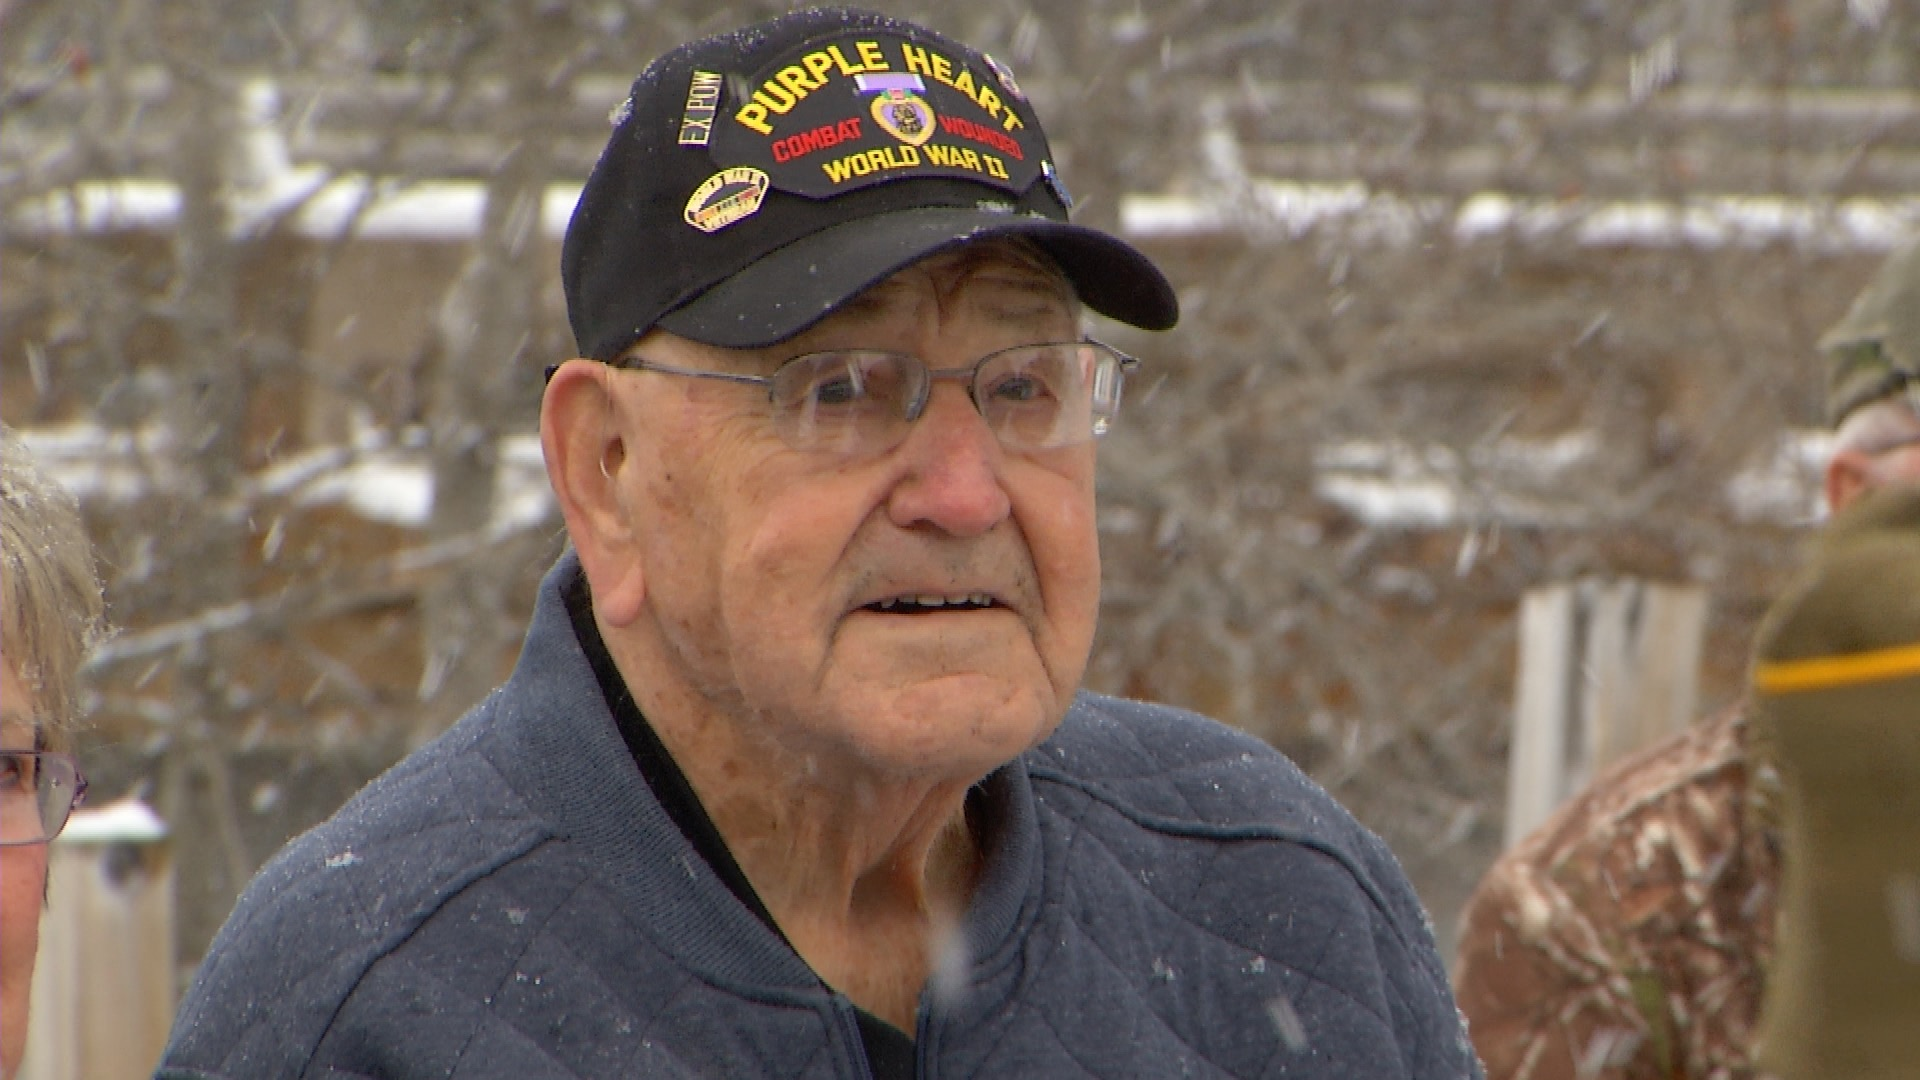 aa63ff584 Tags: brimley, chippewa county, russell hoornstra, superior township,  veteran, Veterans Day, World War II